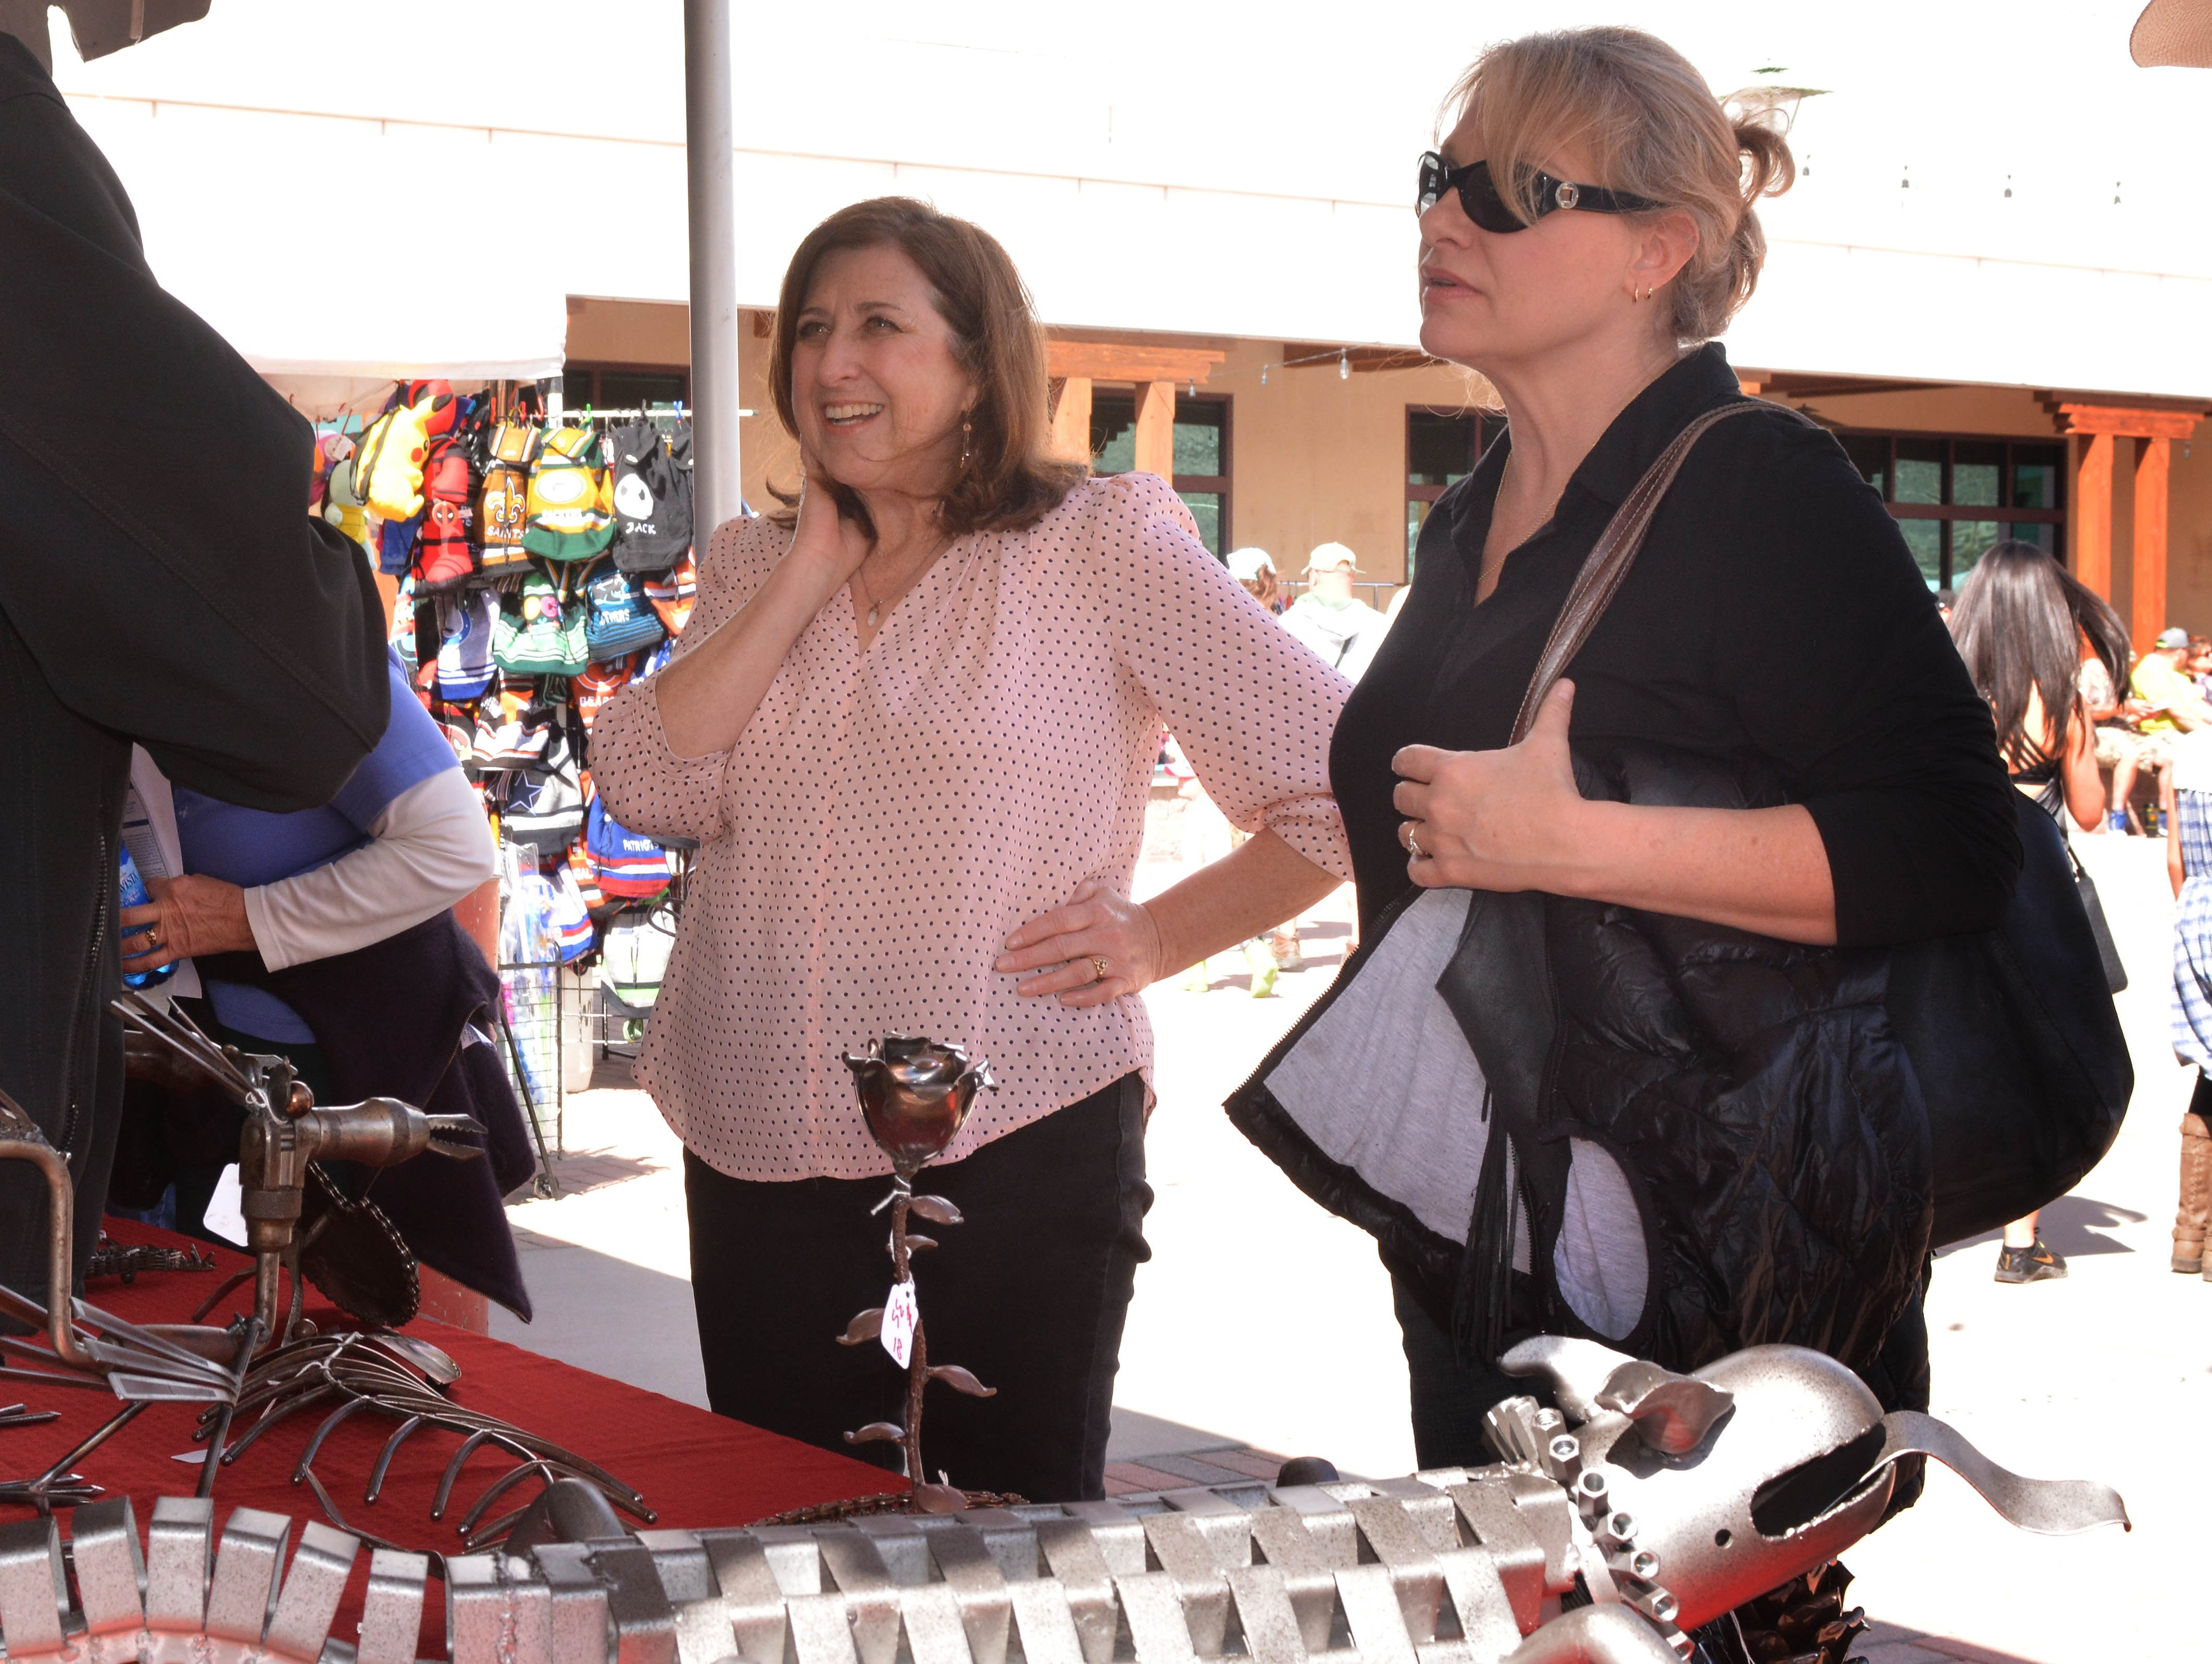 Terri Allred, left, from Broomfield, Colorado, and Monica Green, from Las Cruces, admire metal sculptures at one of the many arts and crafts vendors at the 20th annual Cowboy Days on Saturday, March 2, 2019, at the New Mexico Farm and Ranch Heritage Museum.